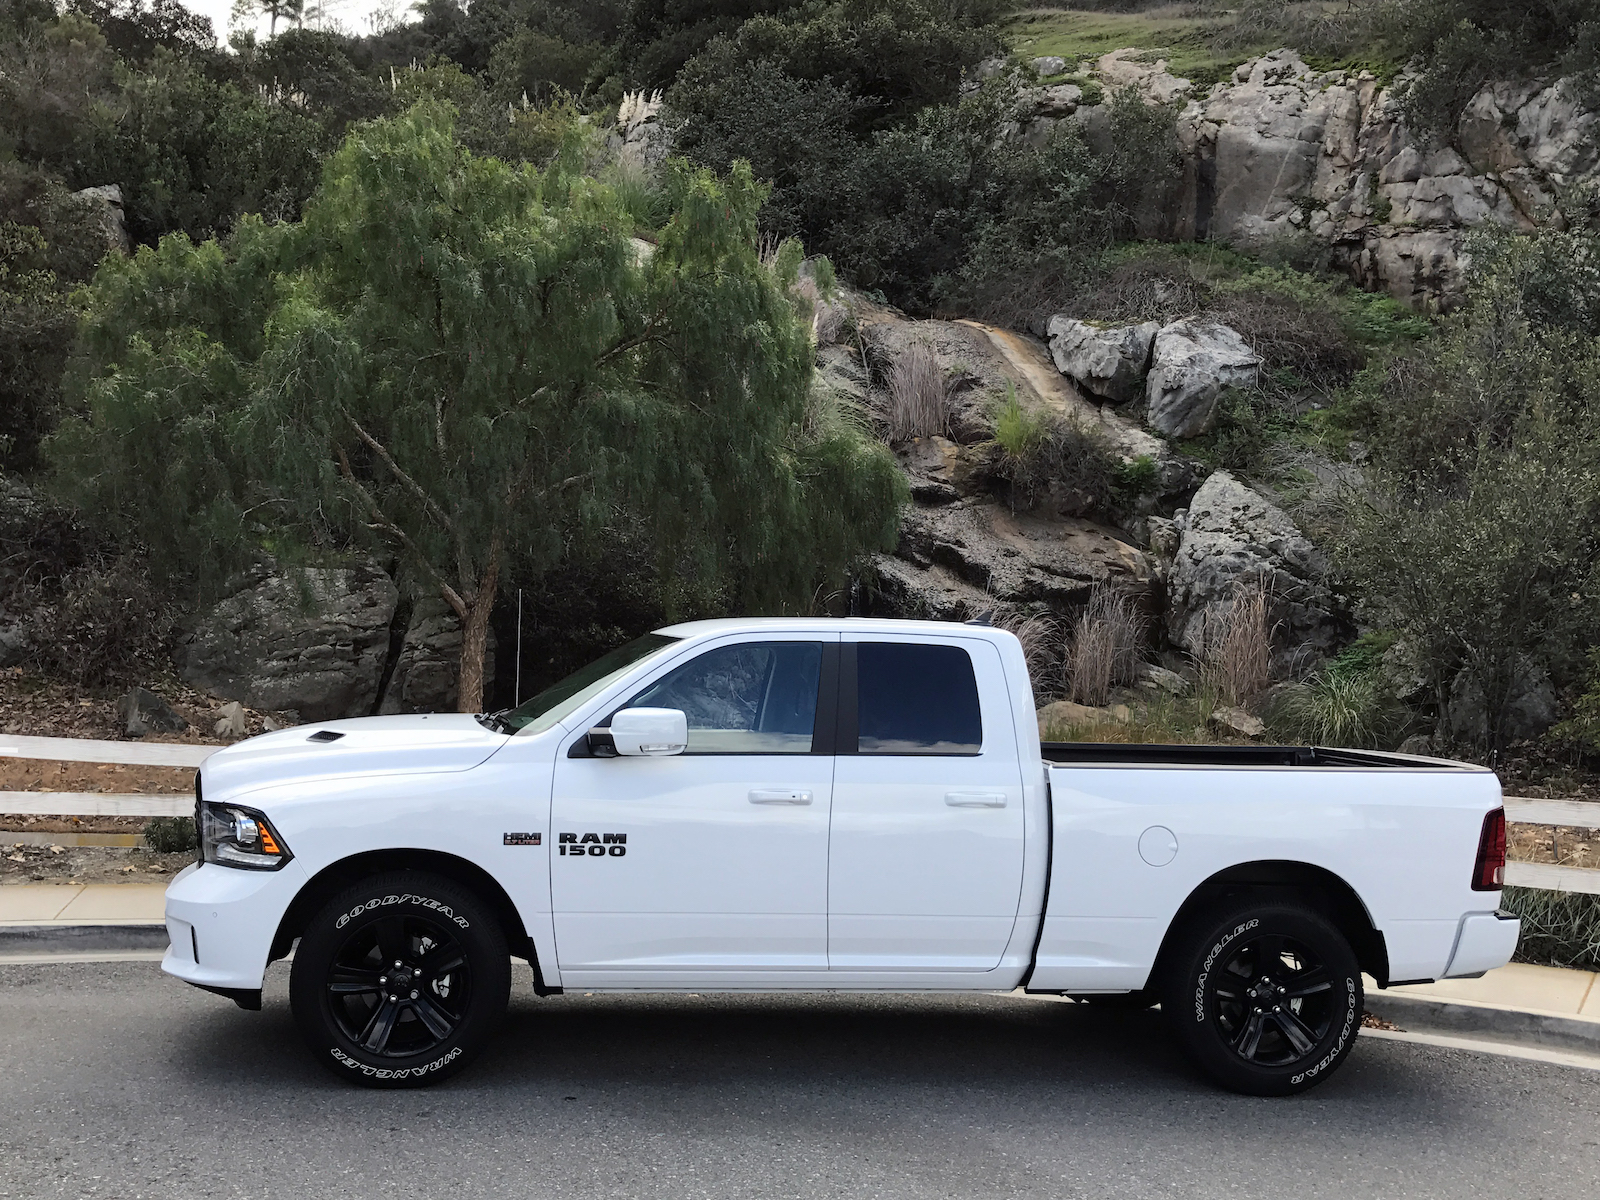 chris dukeduke 39 s drive 2017 ram 1500 night edition quad cab 4x2 review chris duke. Black Bedroom Furniture Sets. Home Design Ideas